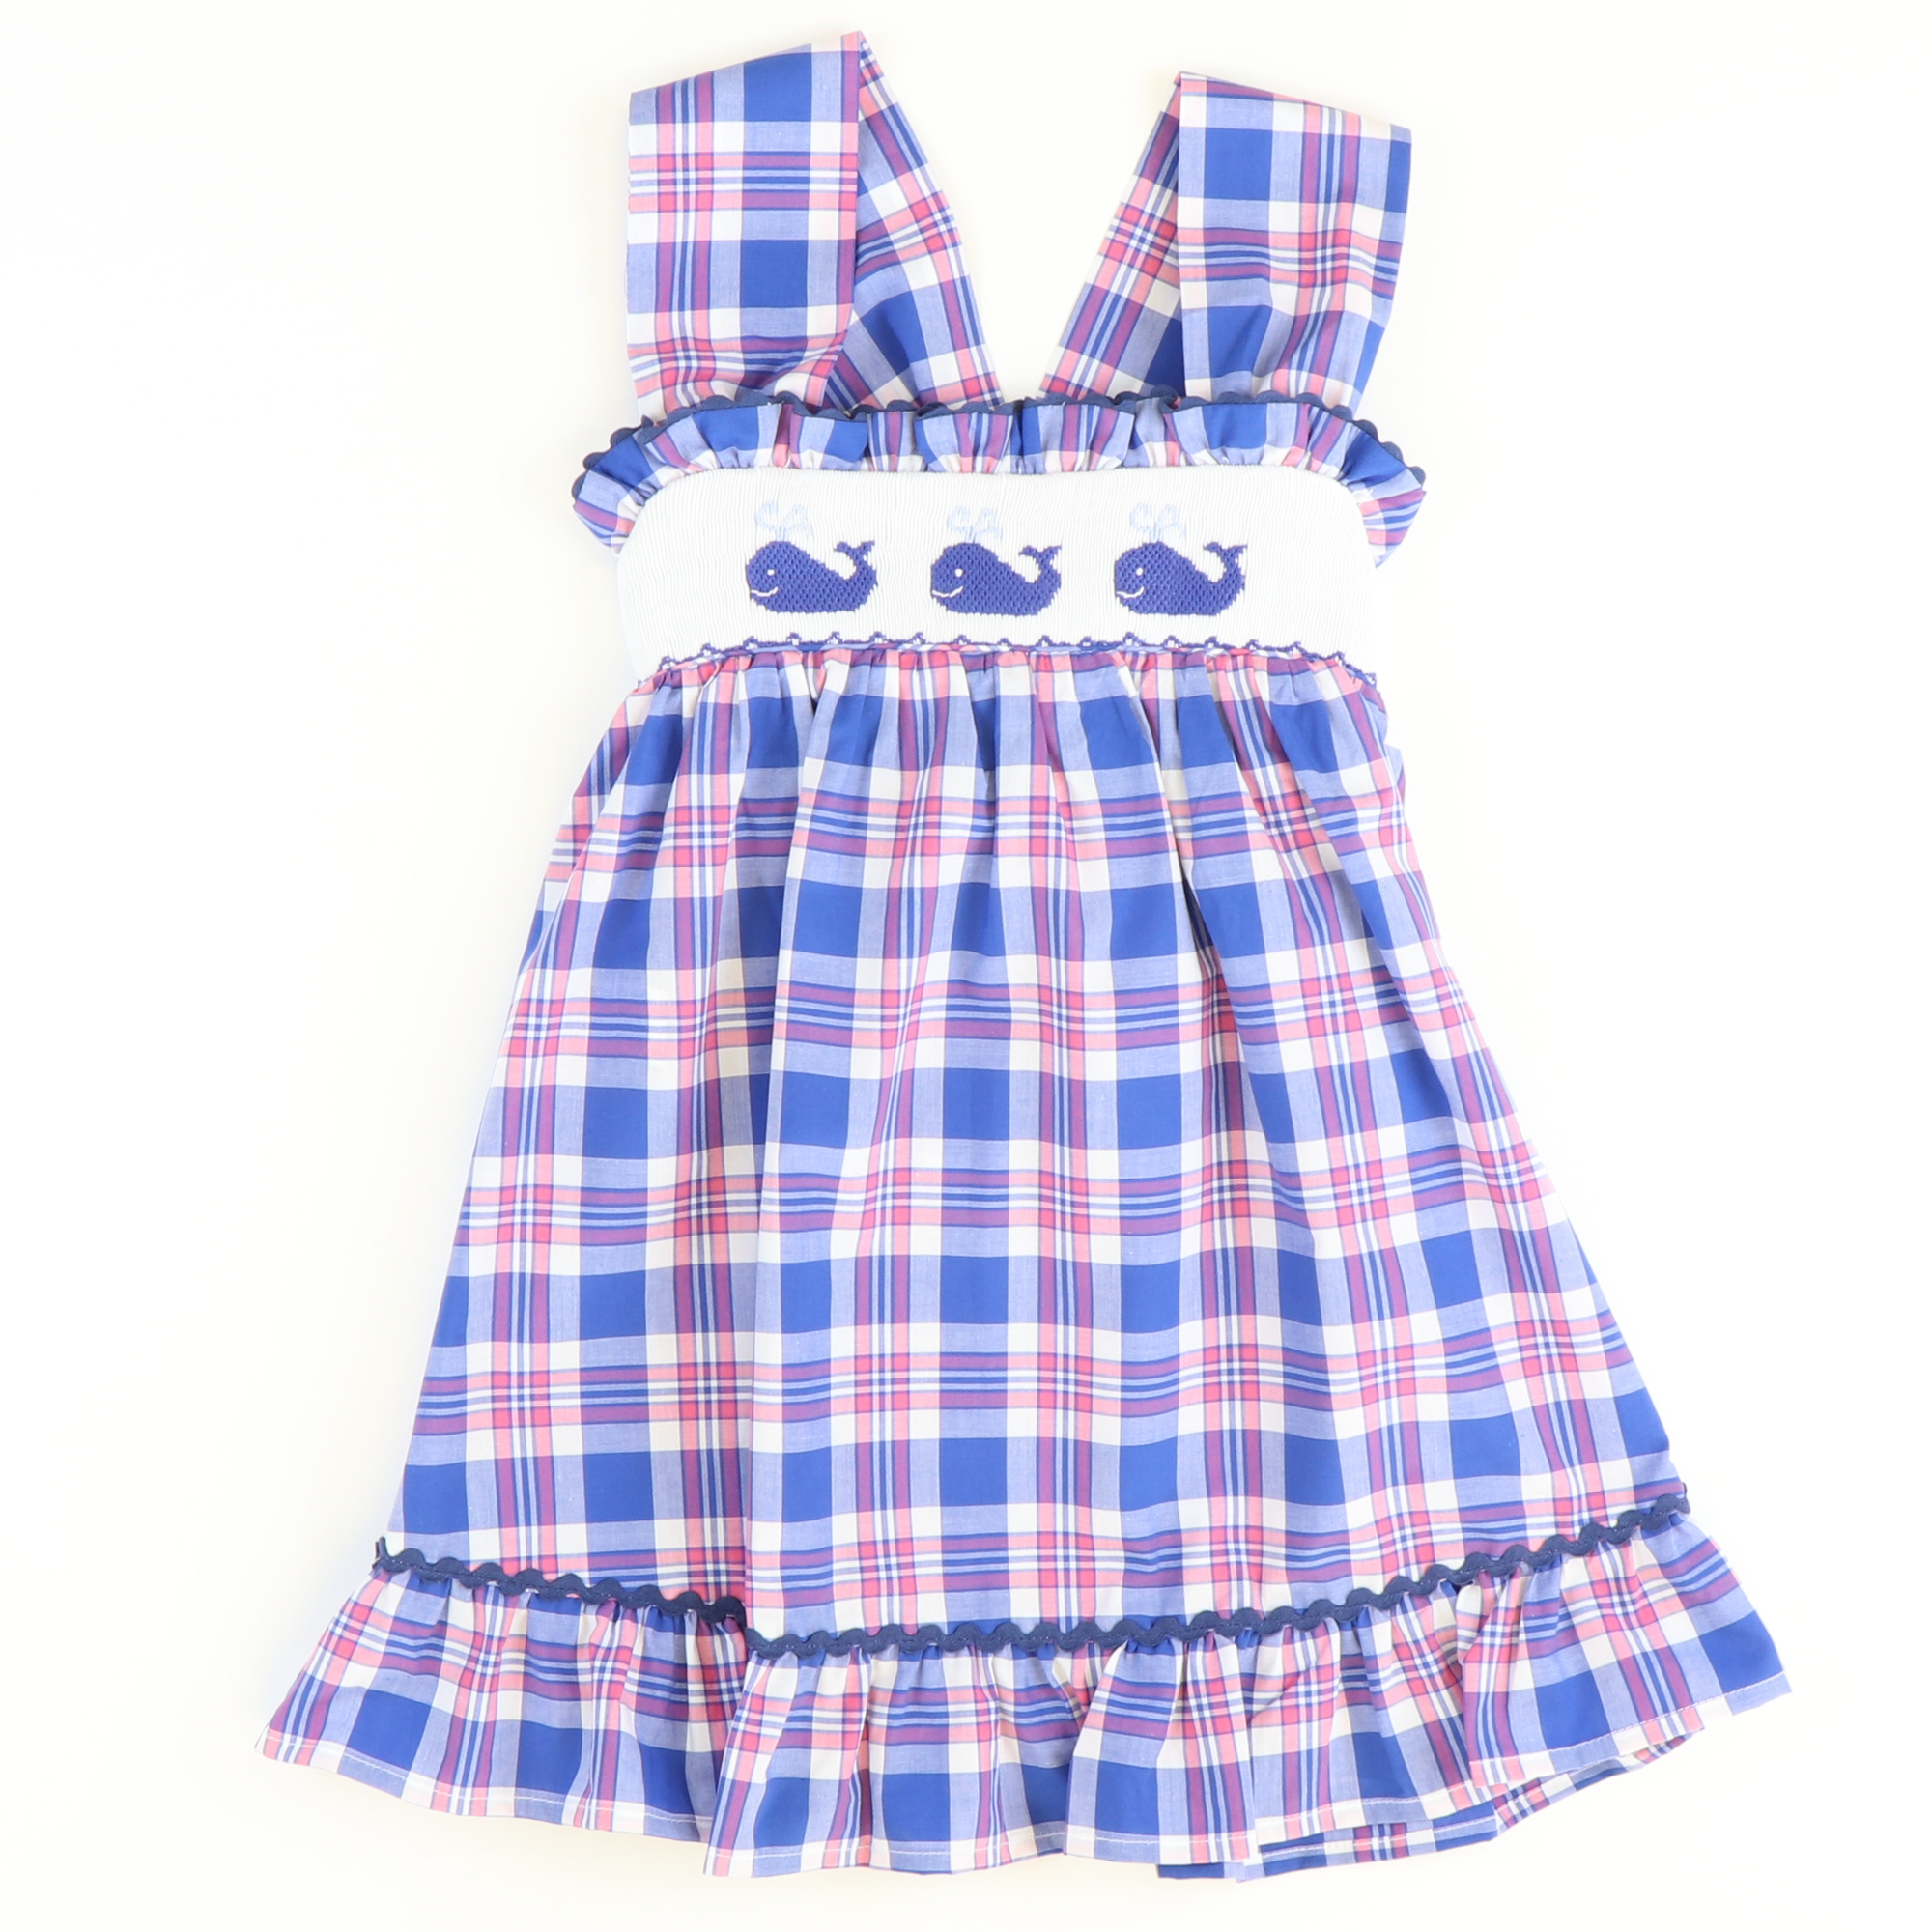 Smocked Whales Strap Sundress - Blue, Pink, & White Plaid